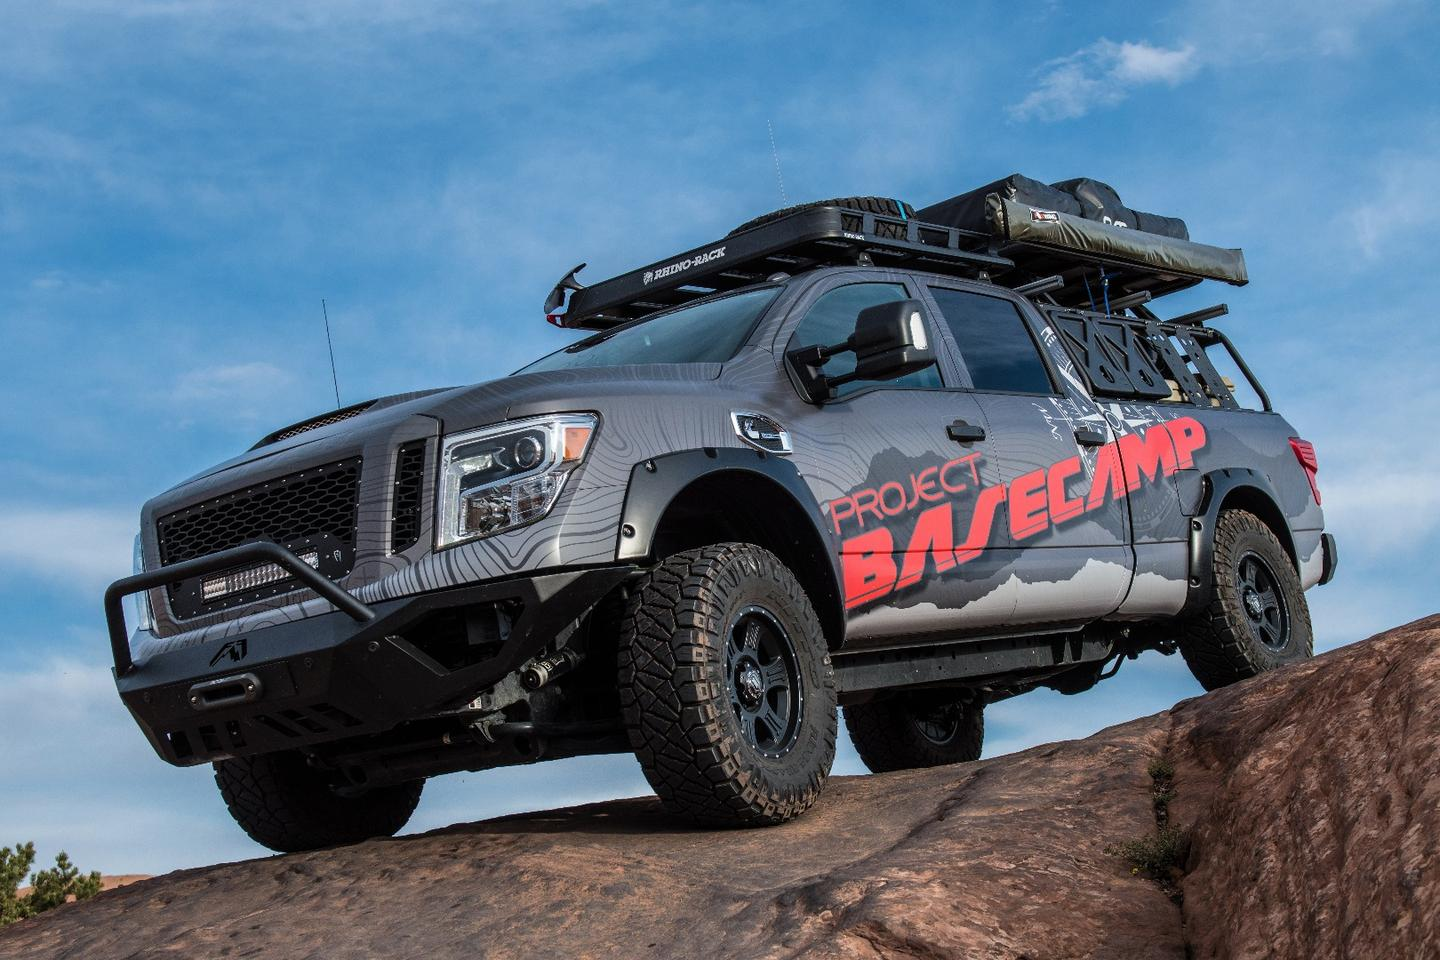 The Titan XD is powered by a diesel engine